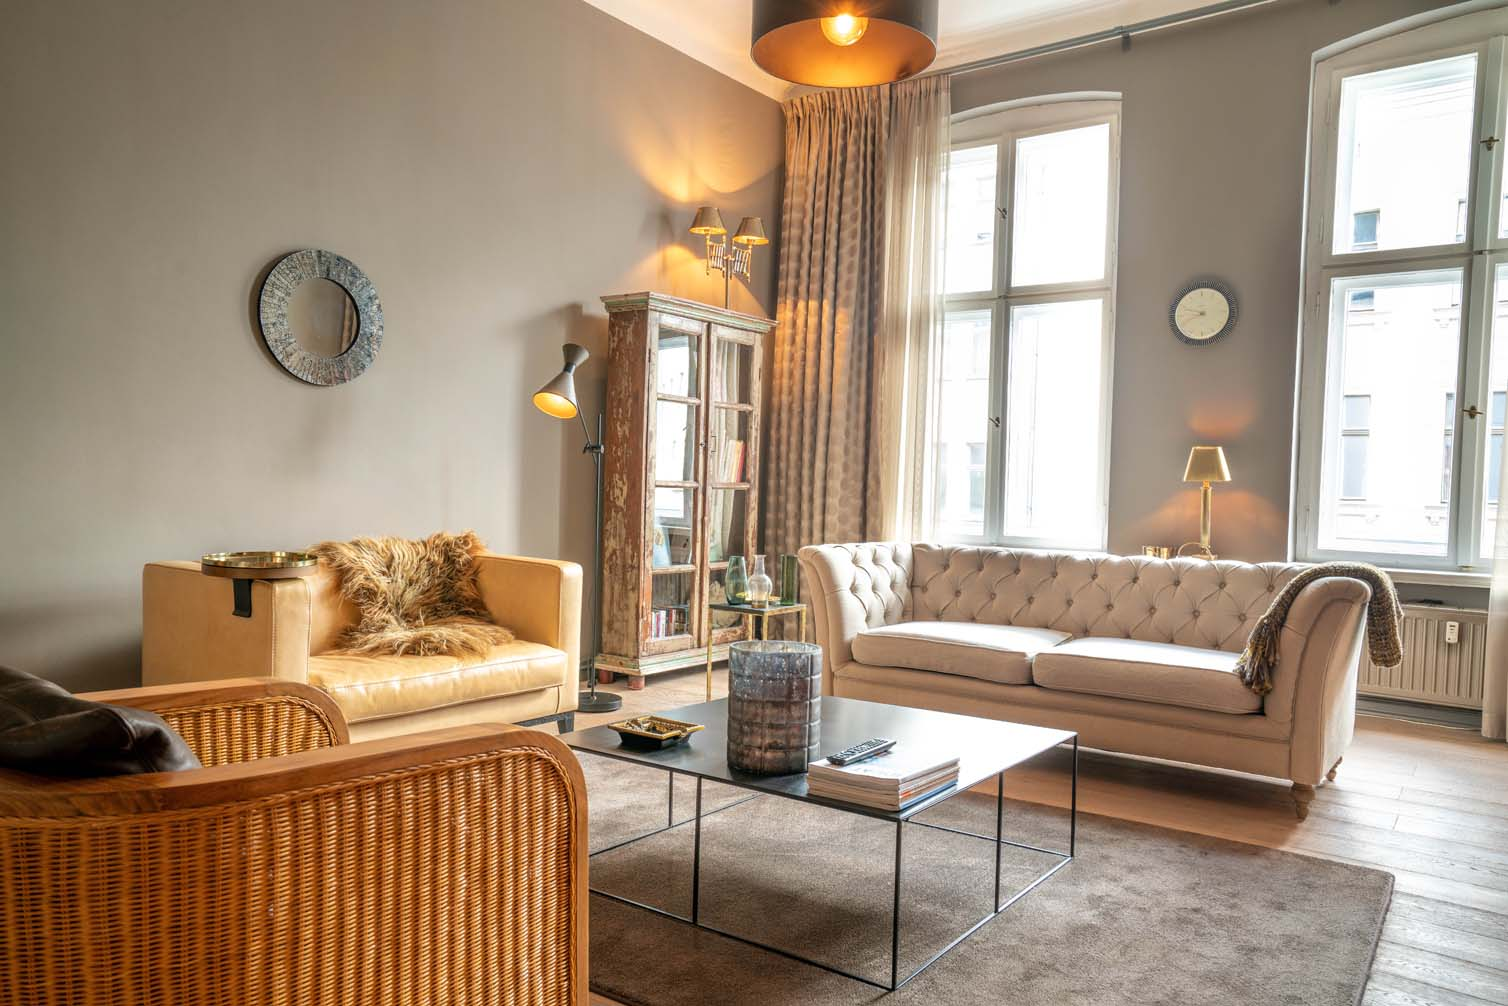 stylish apartment in Belrin Mitte